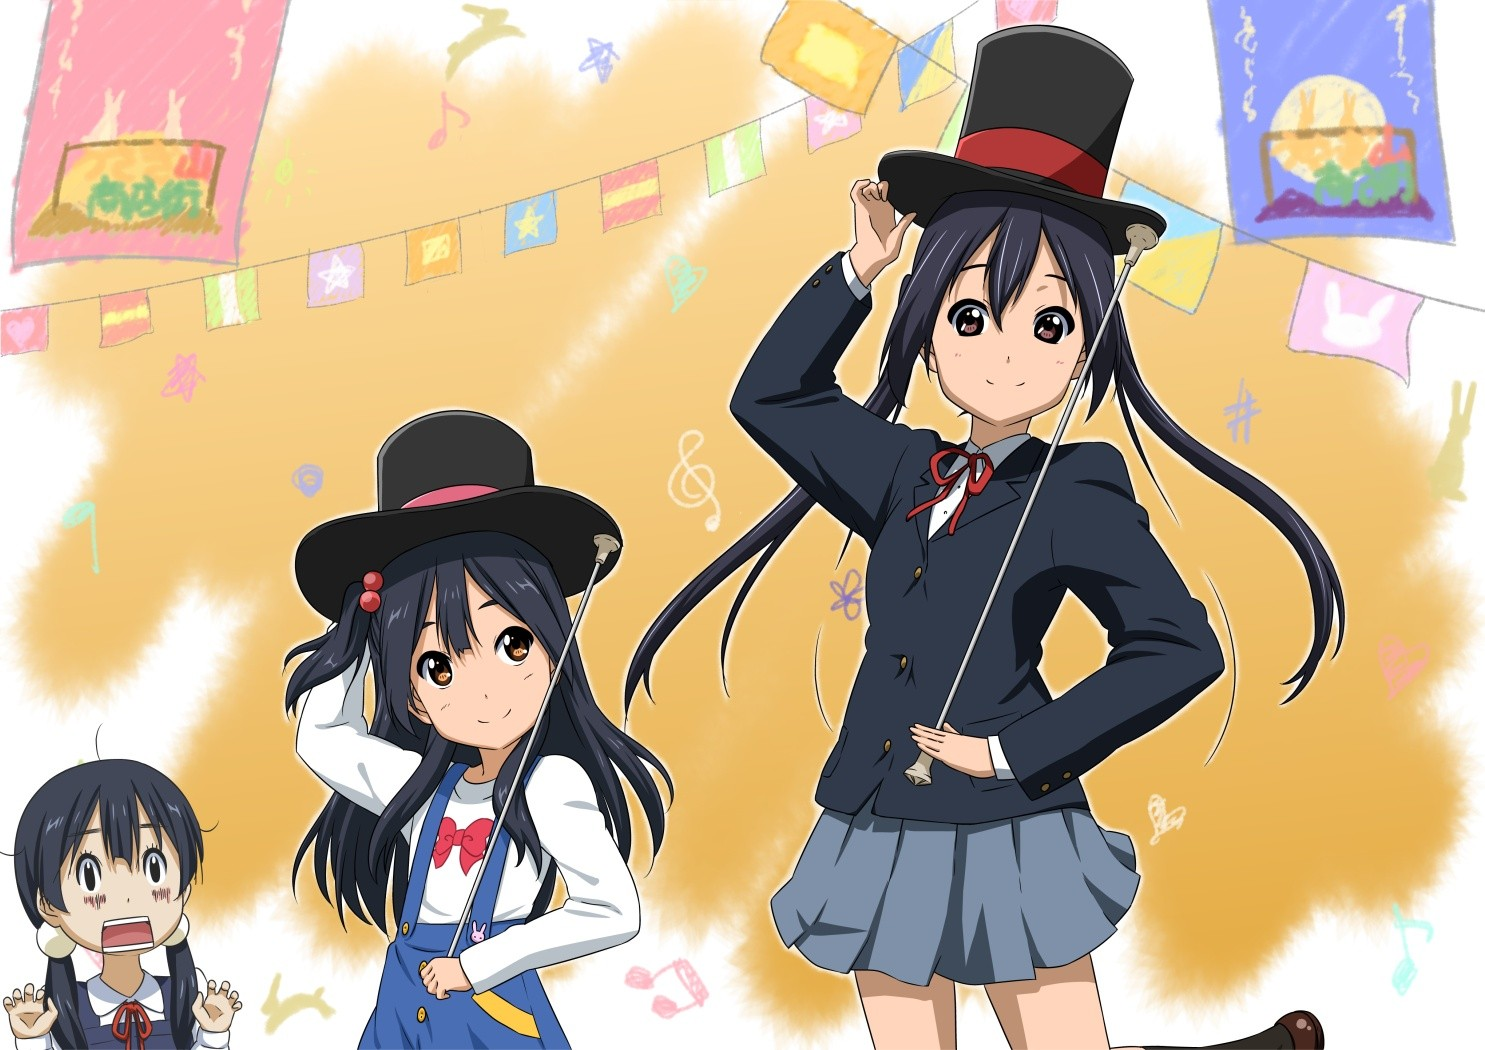 Anime 1485x1050 anime girls long hair dark hair K-ON! Azuki Azusa skirt top hat twintails schoolgirl Tamako Market Kitashirakawa Anko Kitashirakawa Tamako